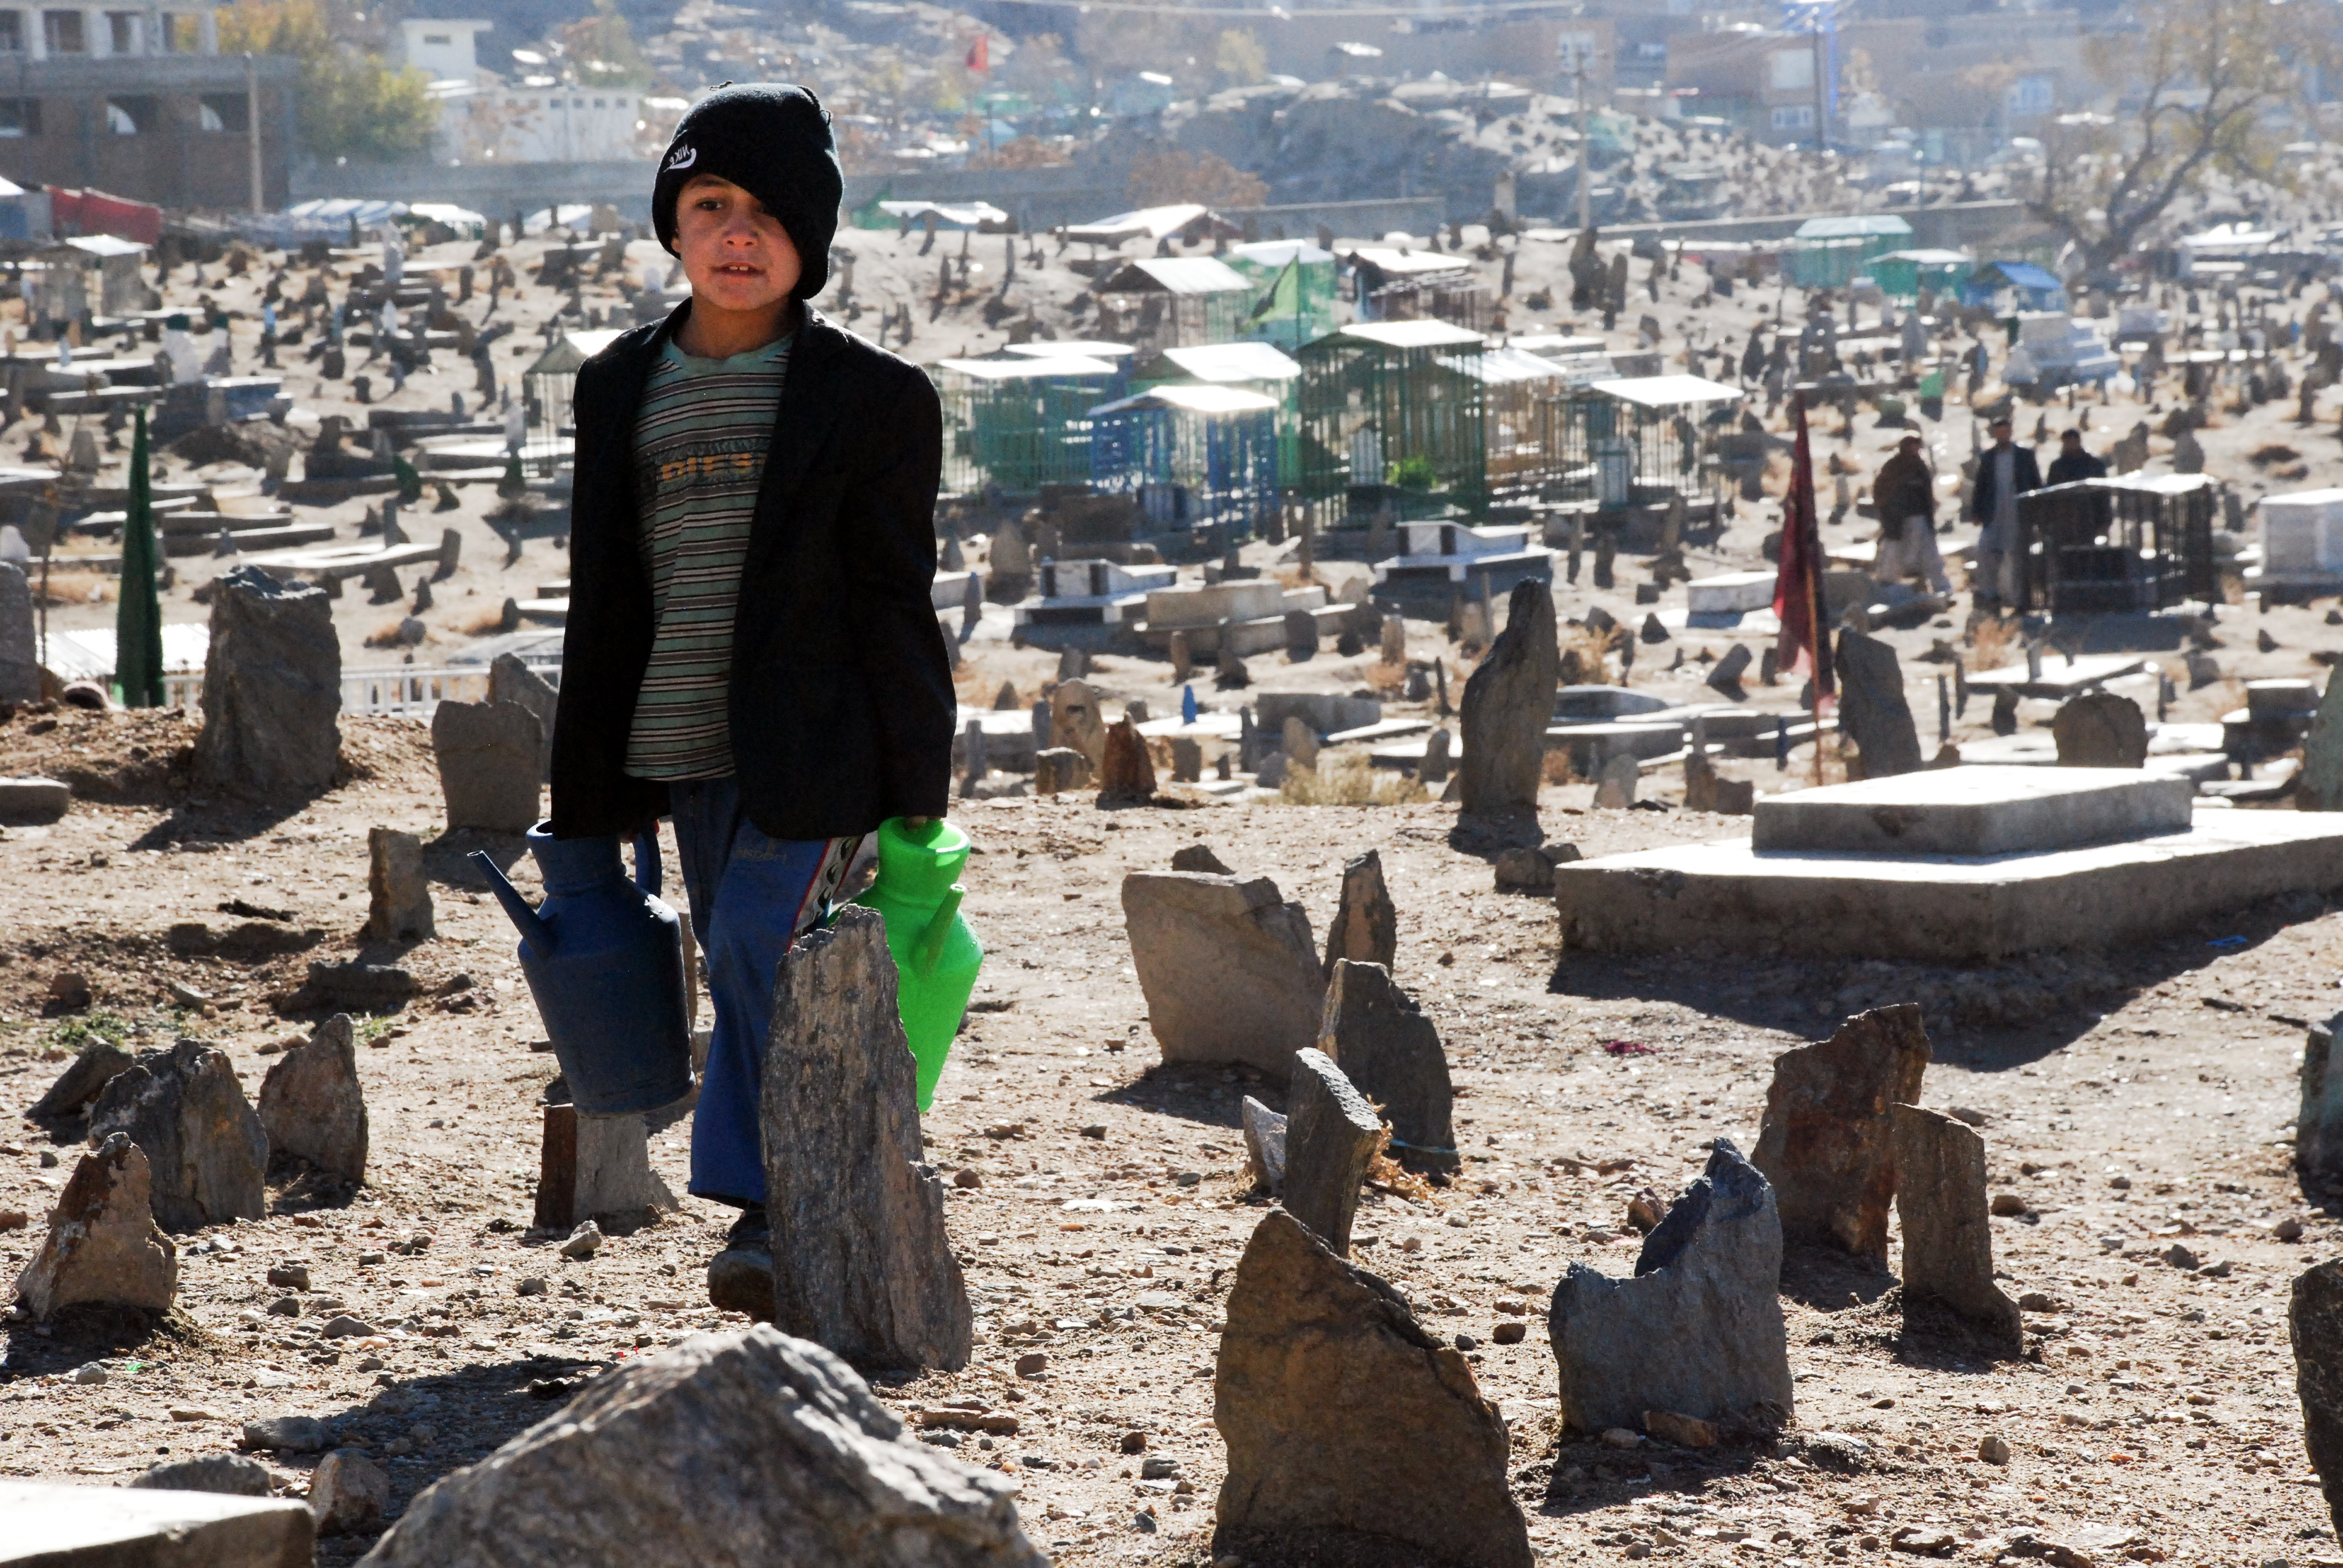 600,000 Afghanistan children suffering from severe acute